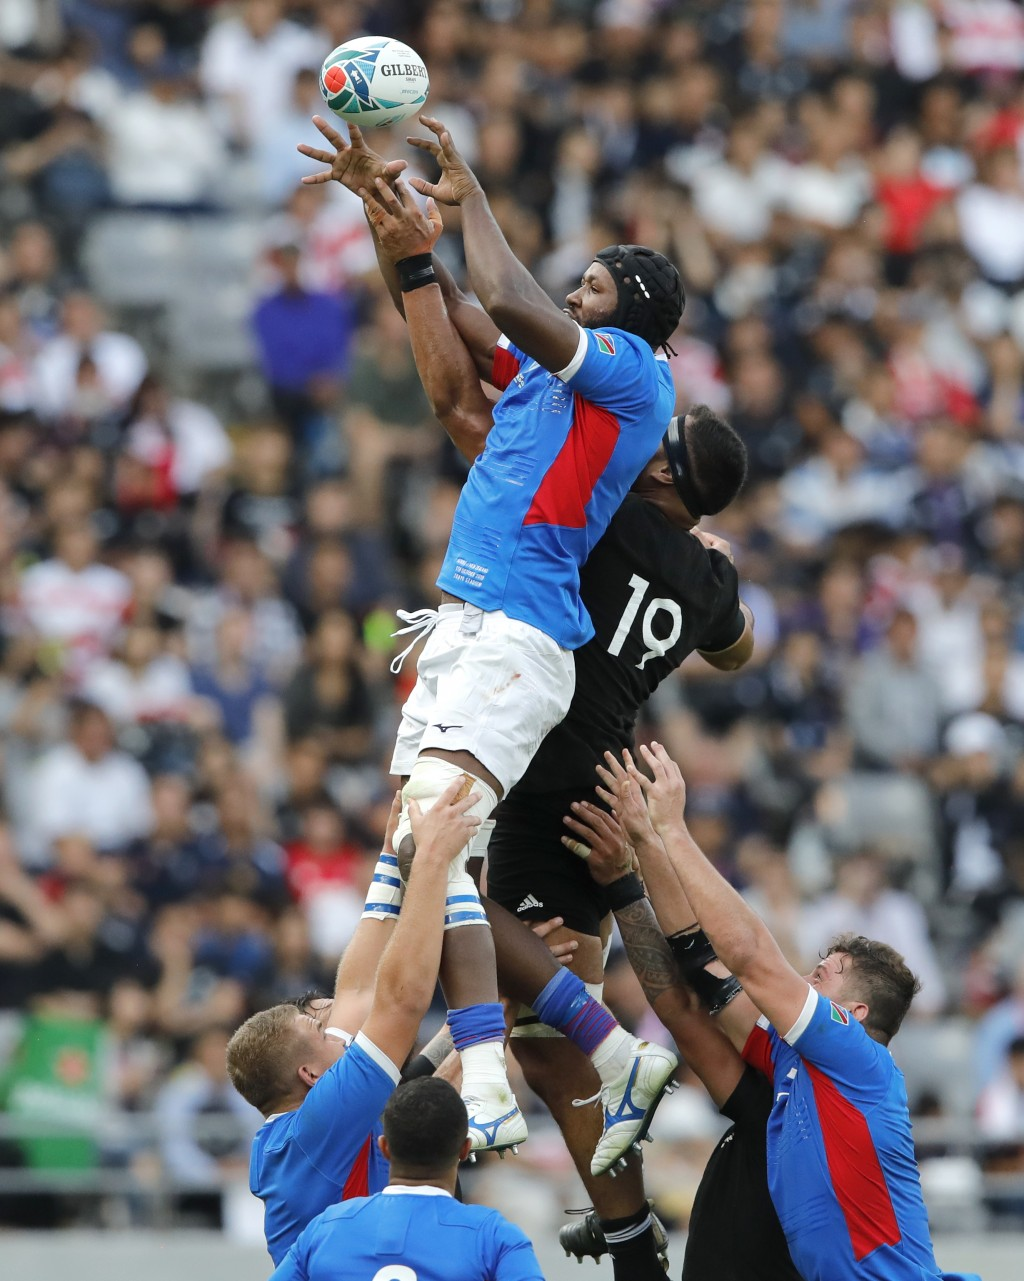 Namibia's Tjiuee Uanivi wins the lineout ball ahead of New Zealand's Patrick Tuipulotu during the Rugby World Cup Pool B game at Tokyo Stadium between